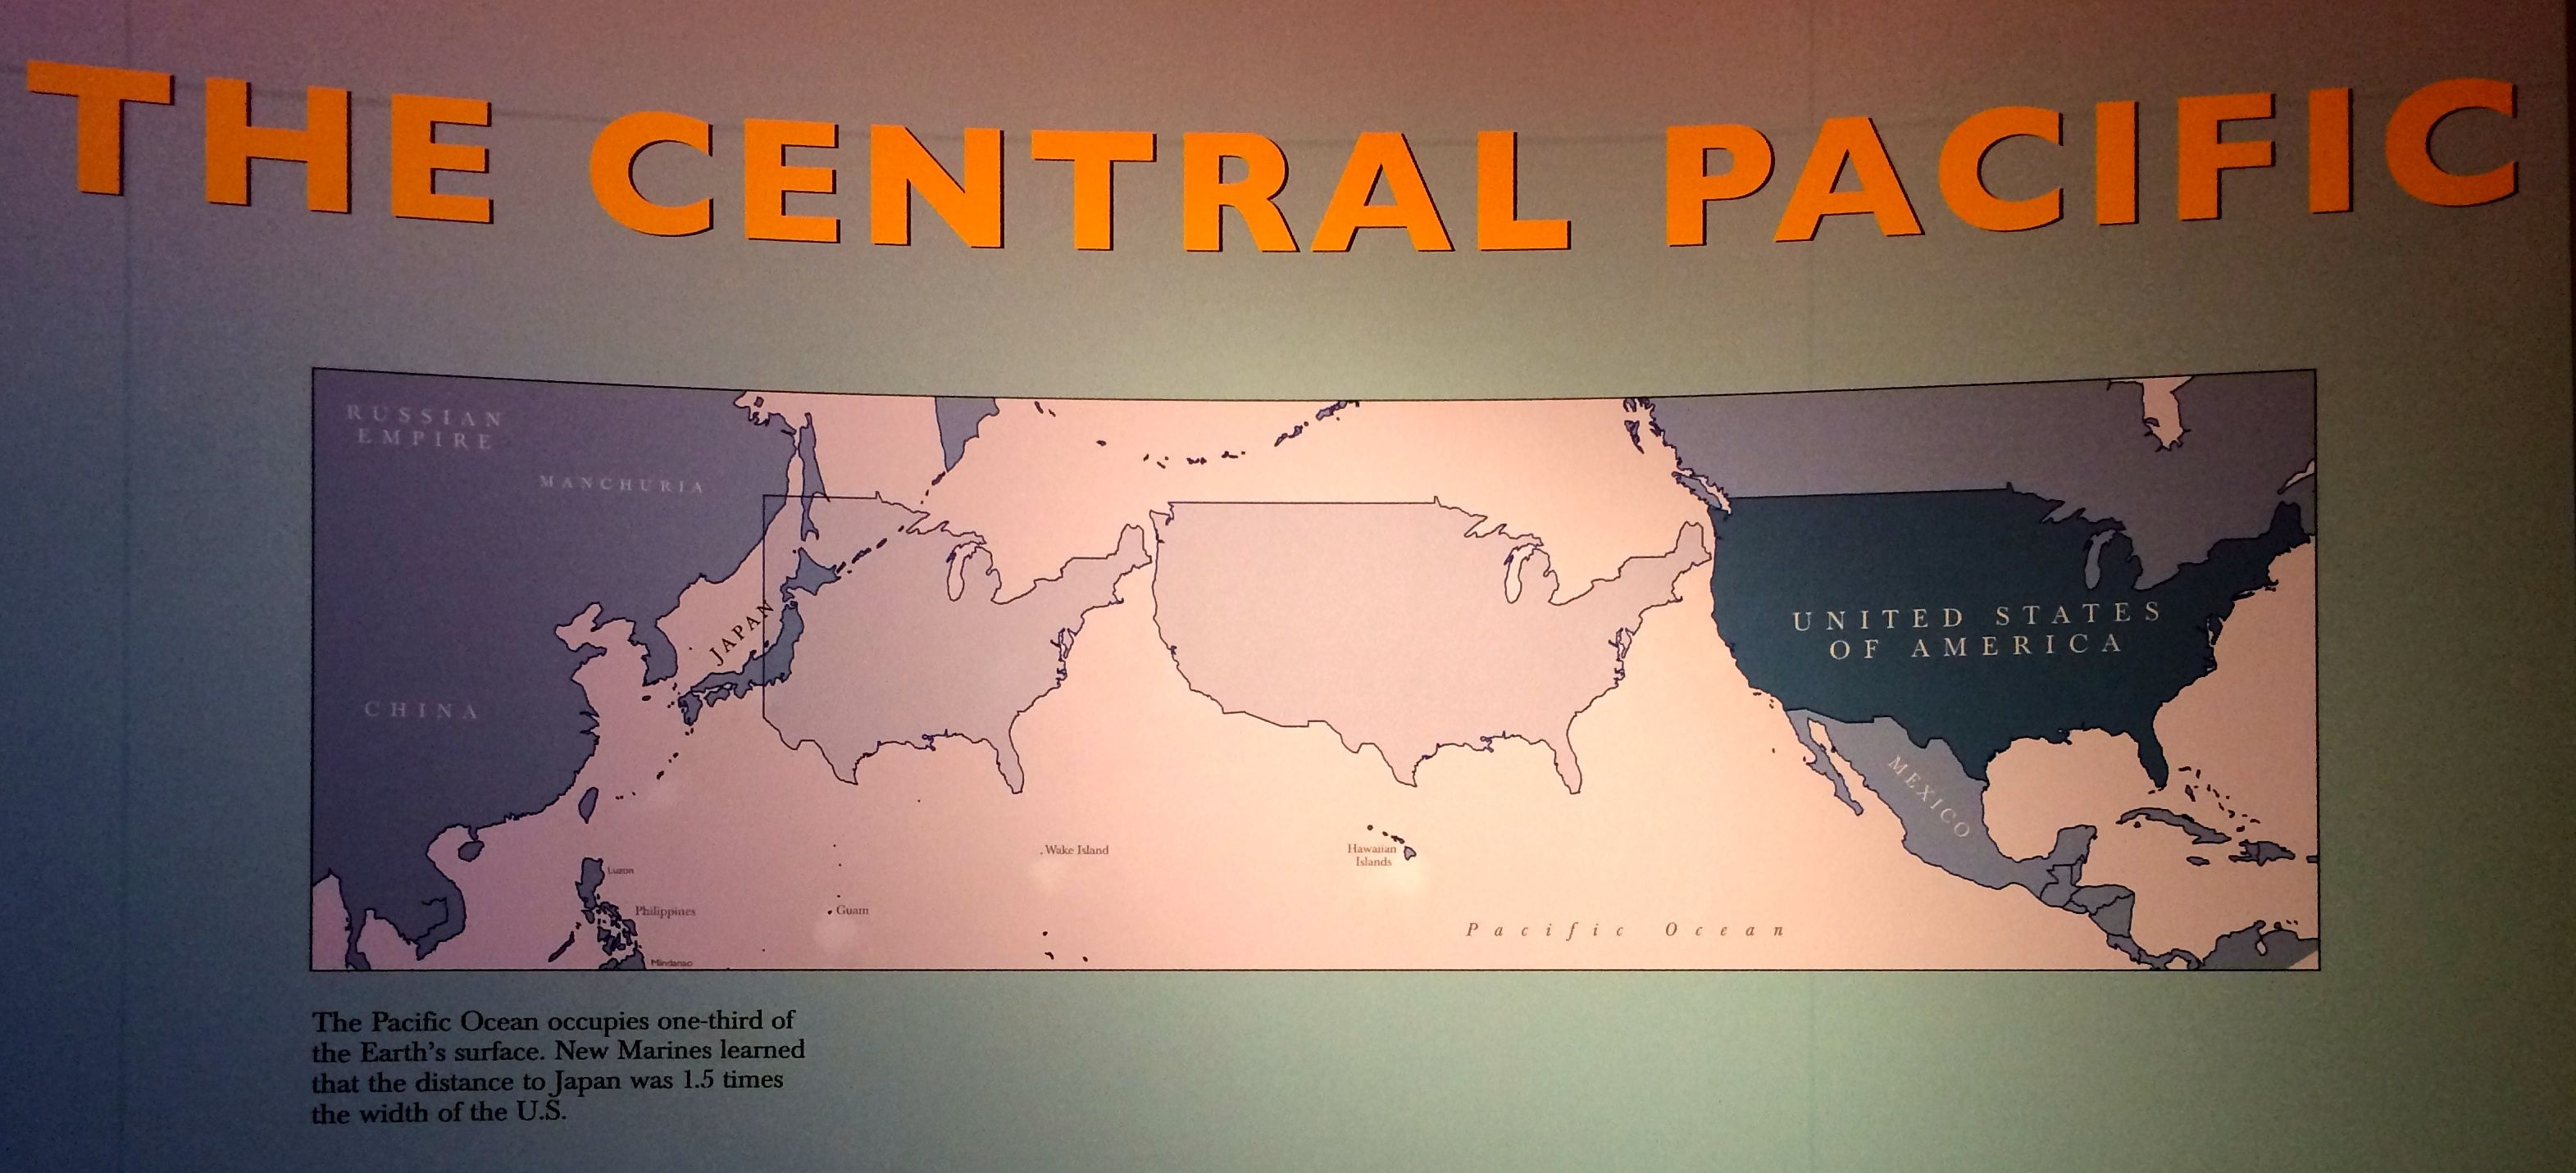 Map showing the relative size of the Central Pacific